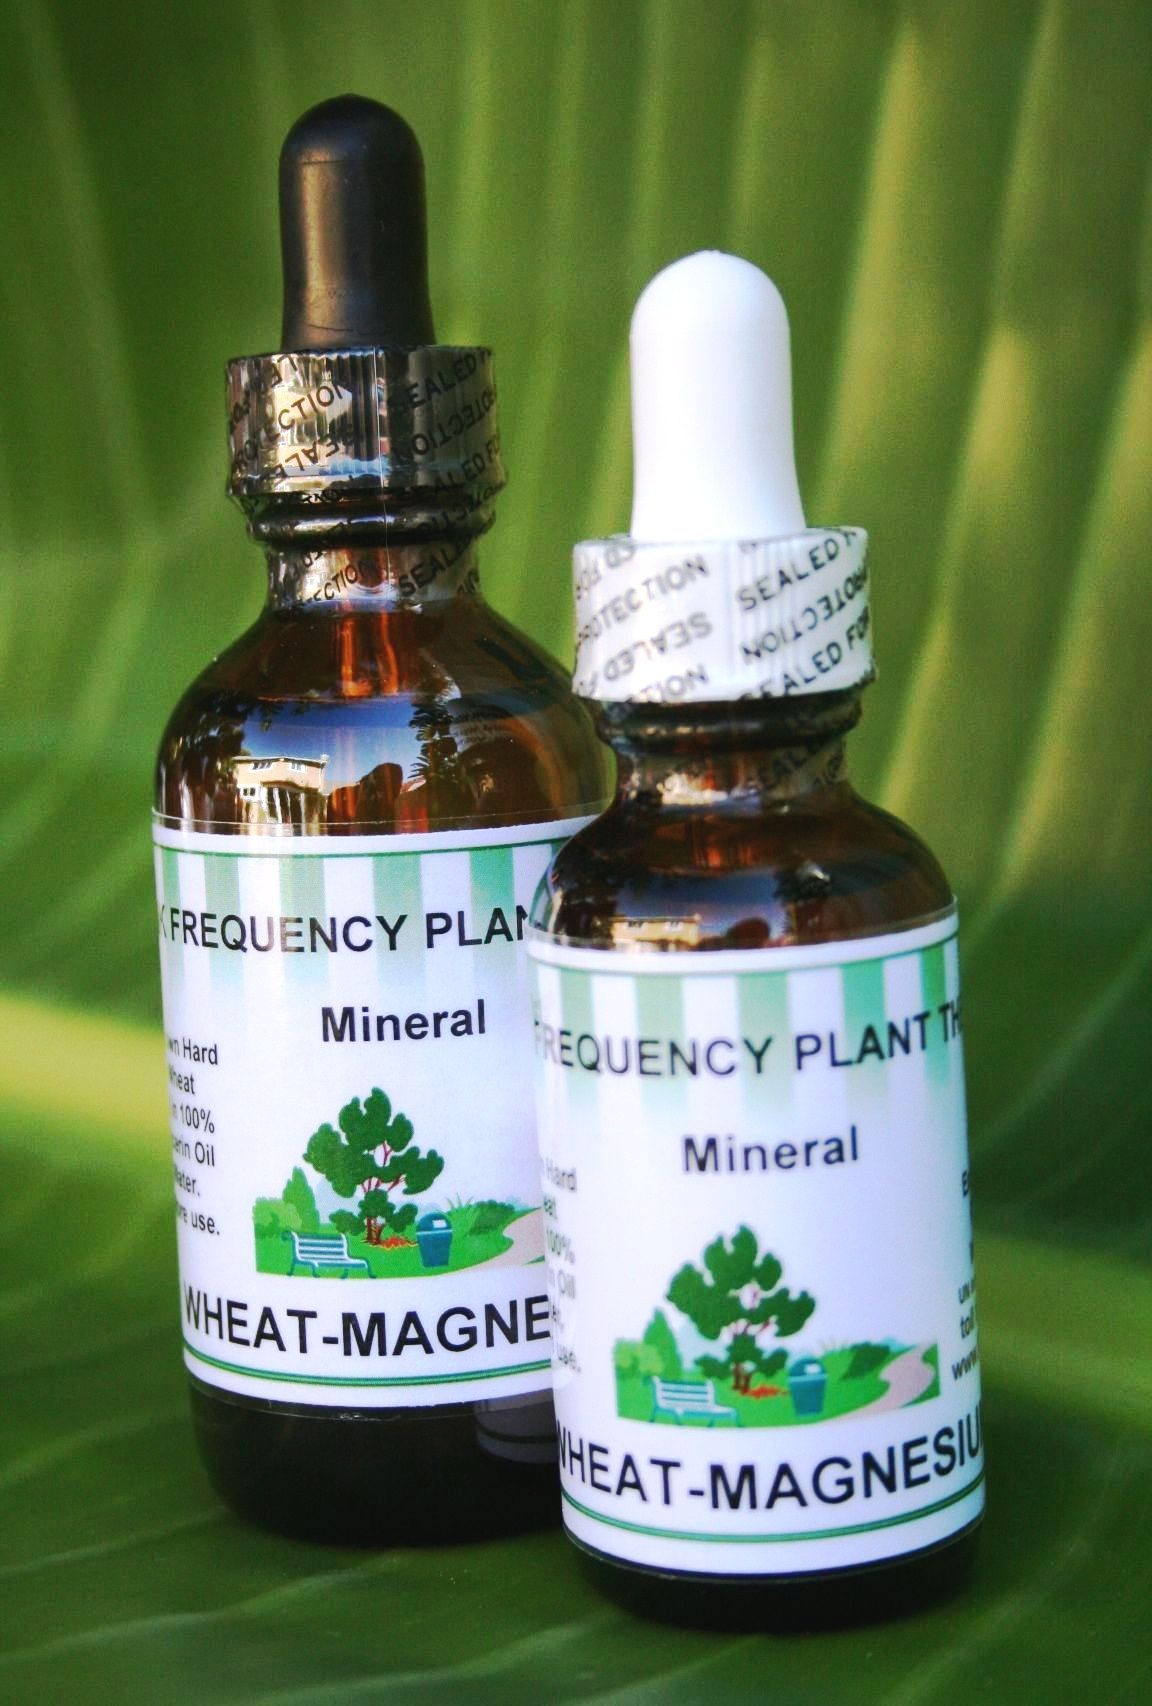 Wheat-Magnesium Vitamin & Mineral - 1oz